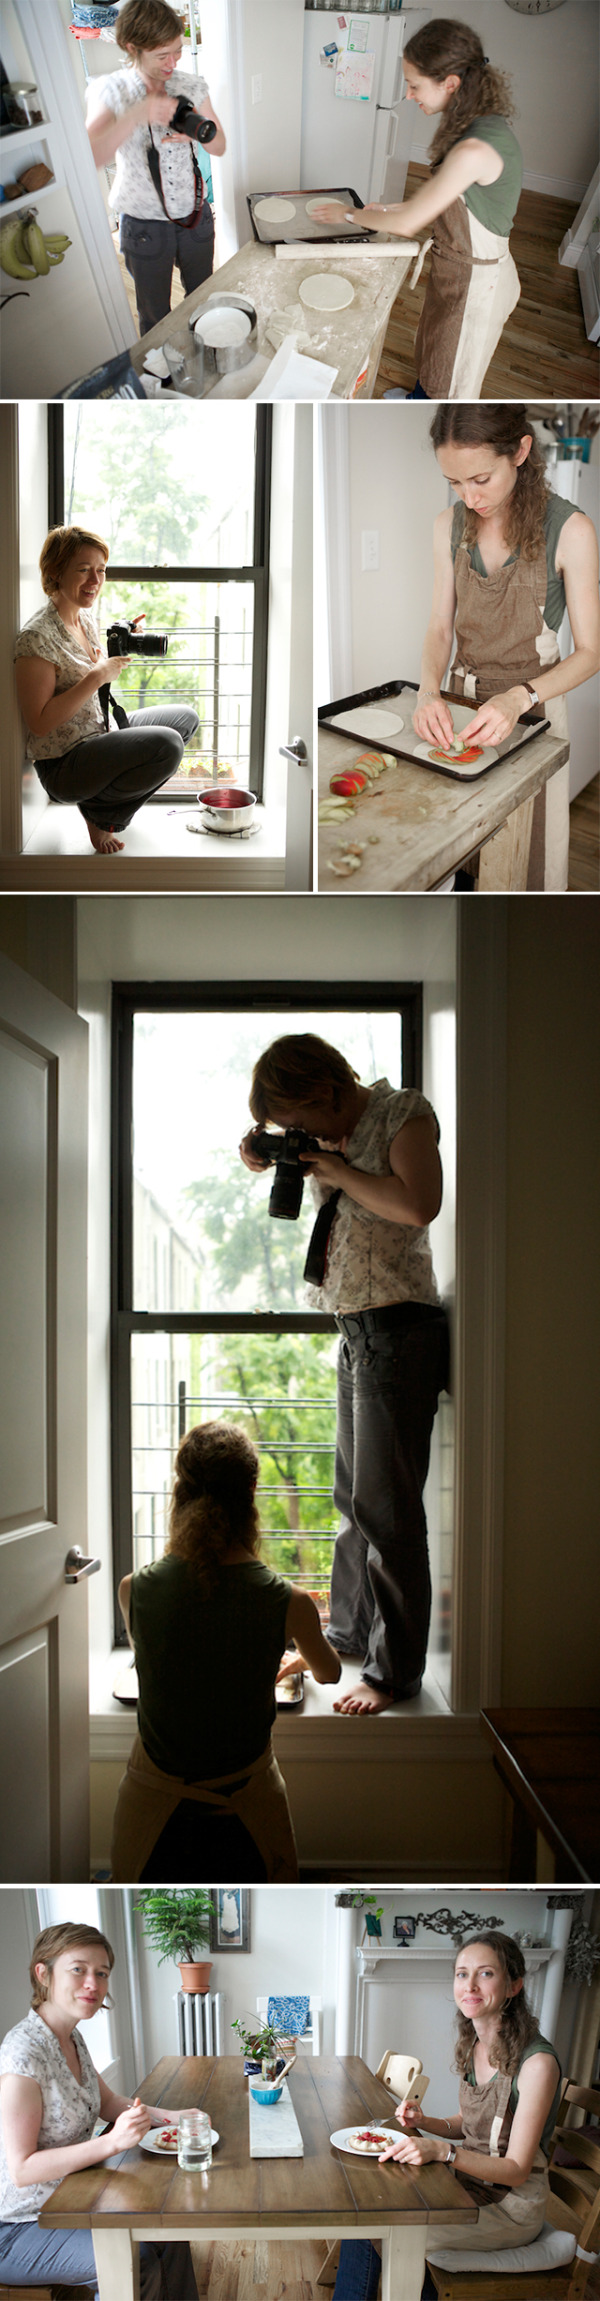 Evi-Abeler_Photography-Whip_Click_Behind-Scenes.jpg